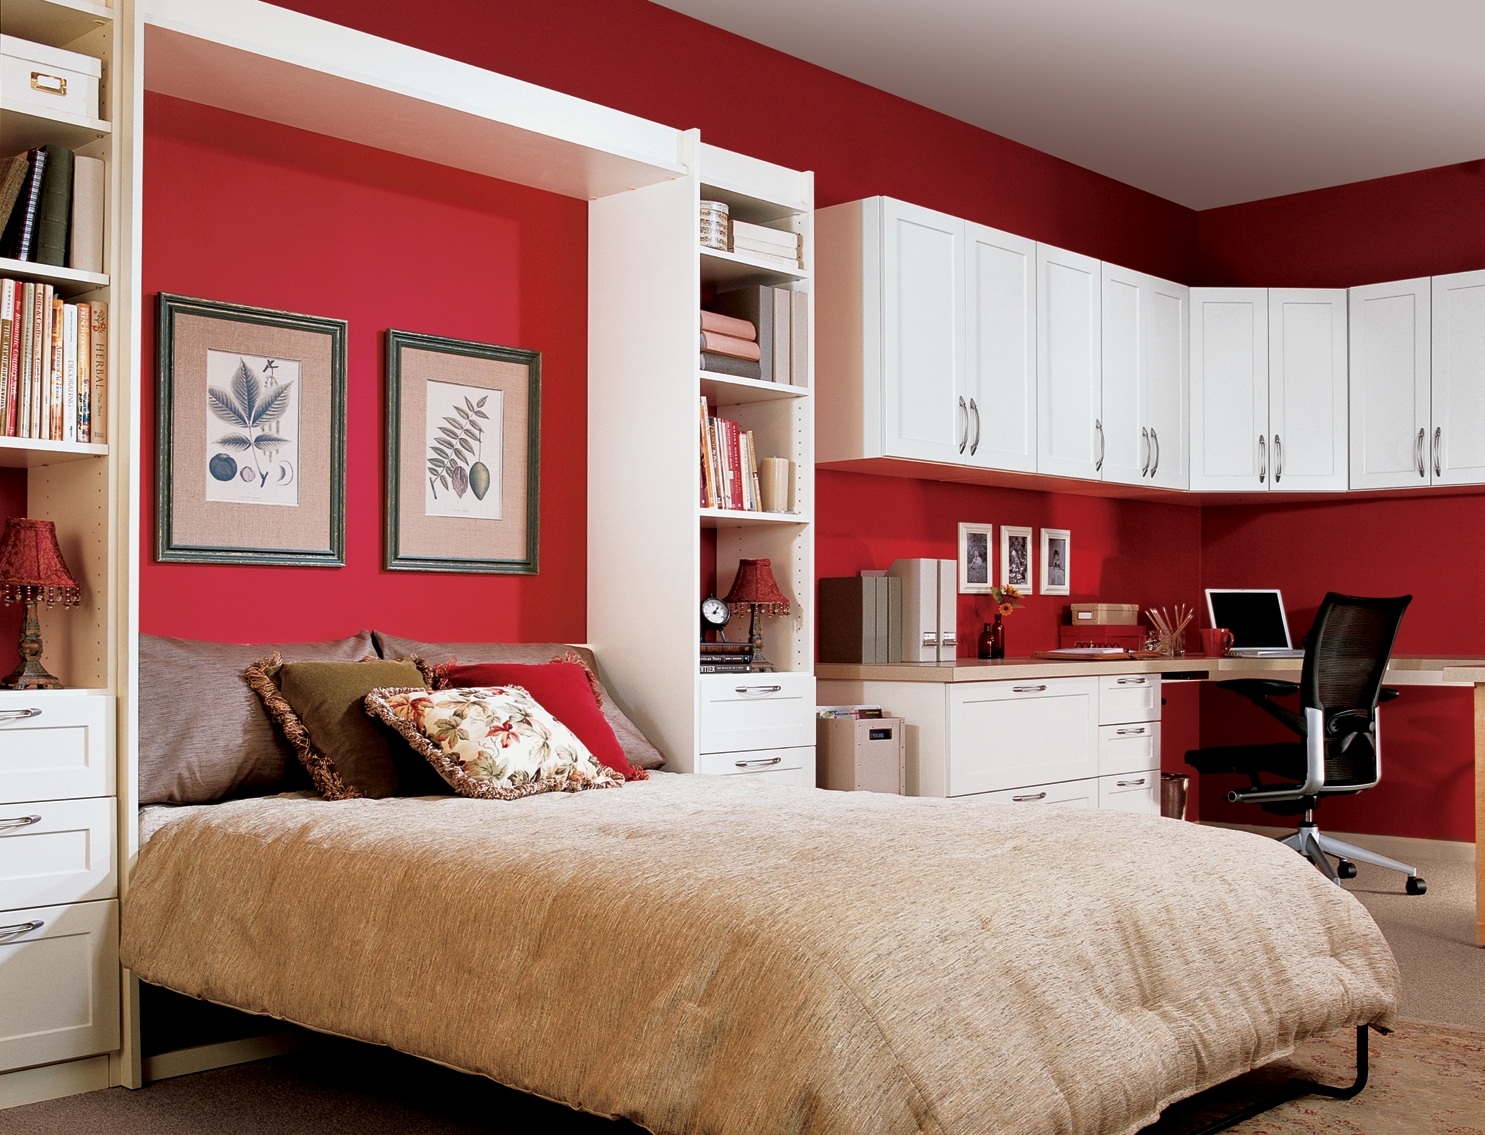 Fold up wall bed a brand new style to have comfortable bedroom amazing red fold up wall bed design with cream quilt and wall picture between standing wall amipublicfo Images